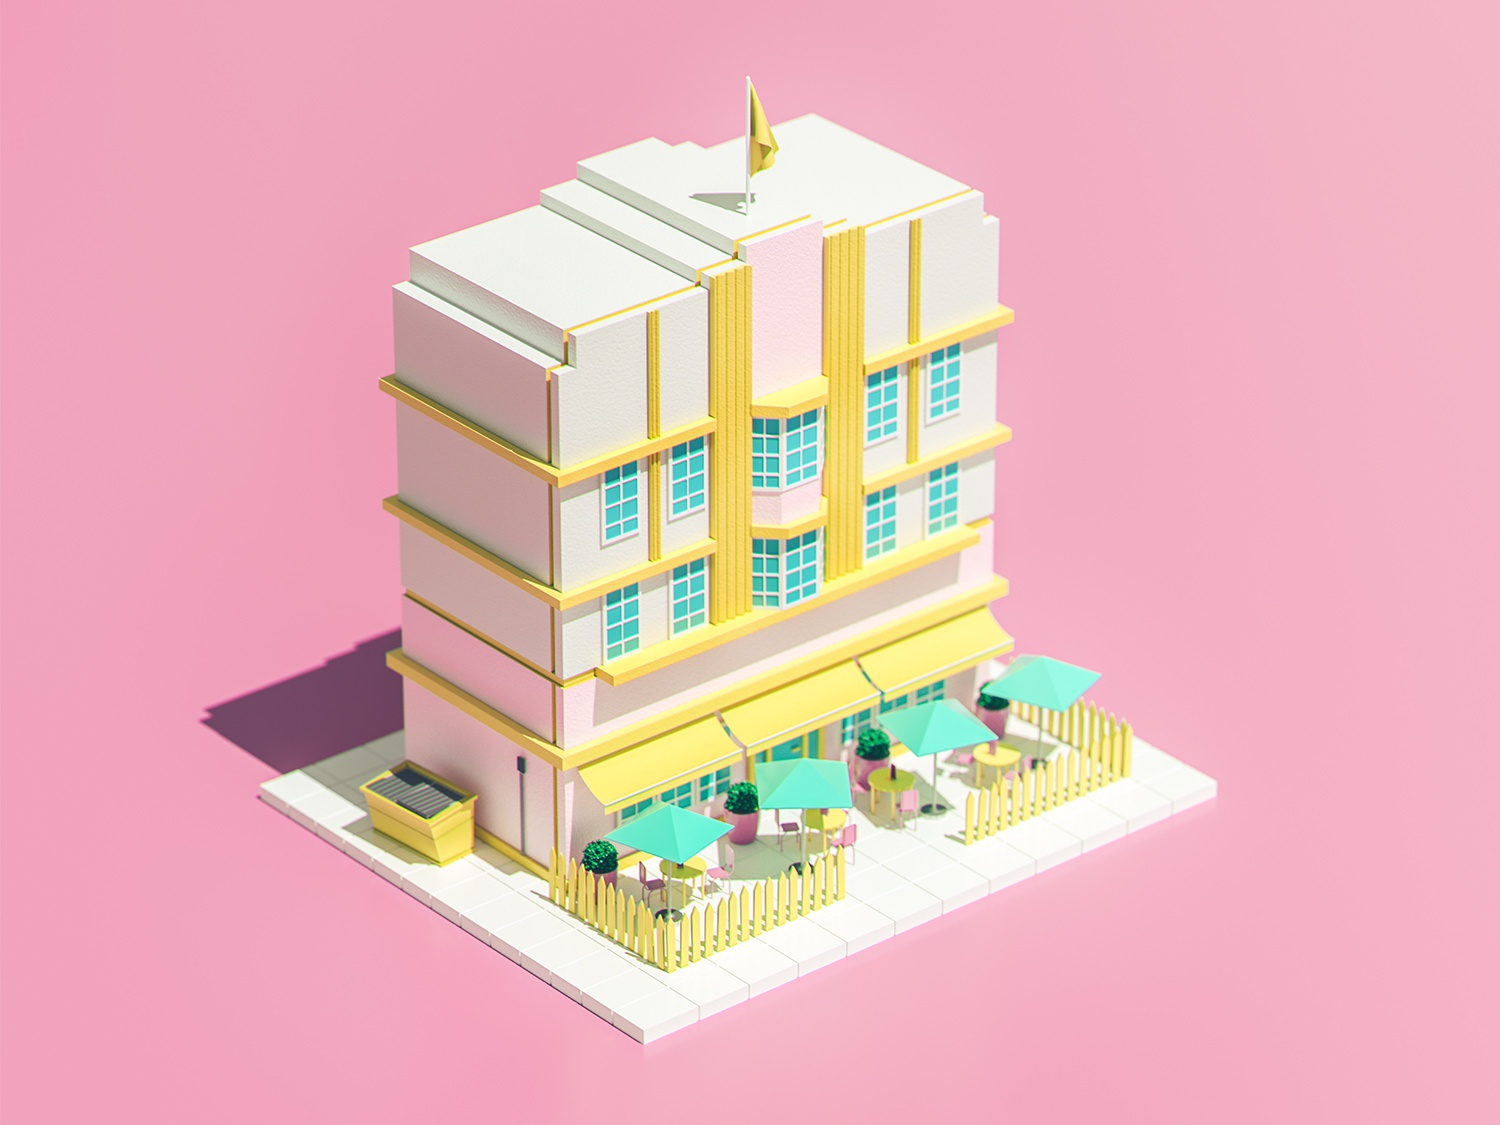 Nice Building #3 city yellow pink colorful octane art deco architecture low poly building illustration design cinema 4d 3d